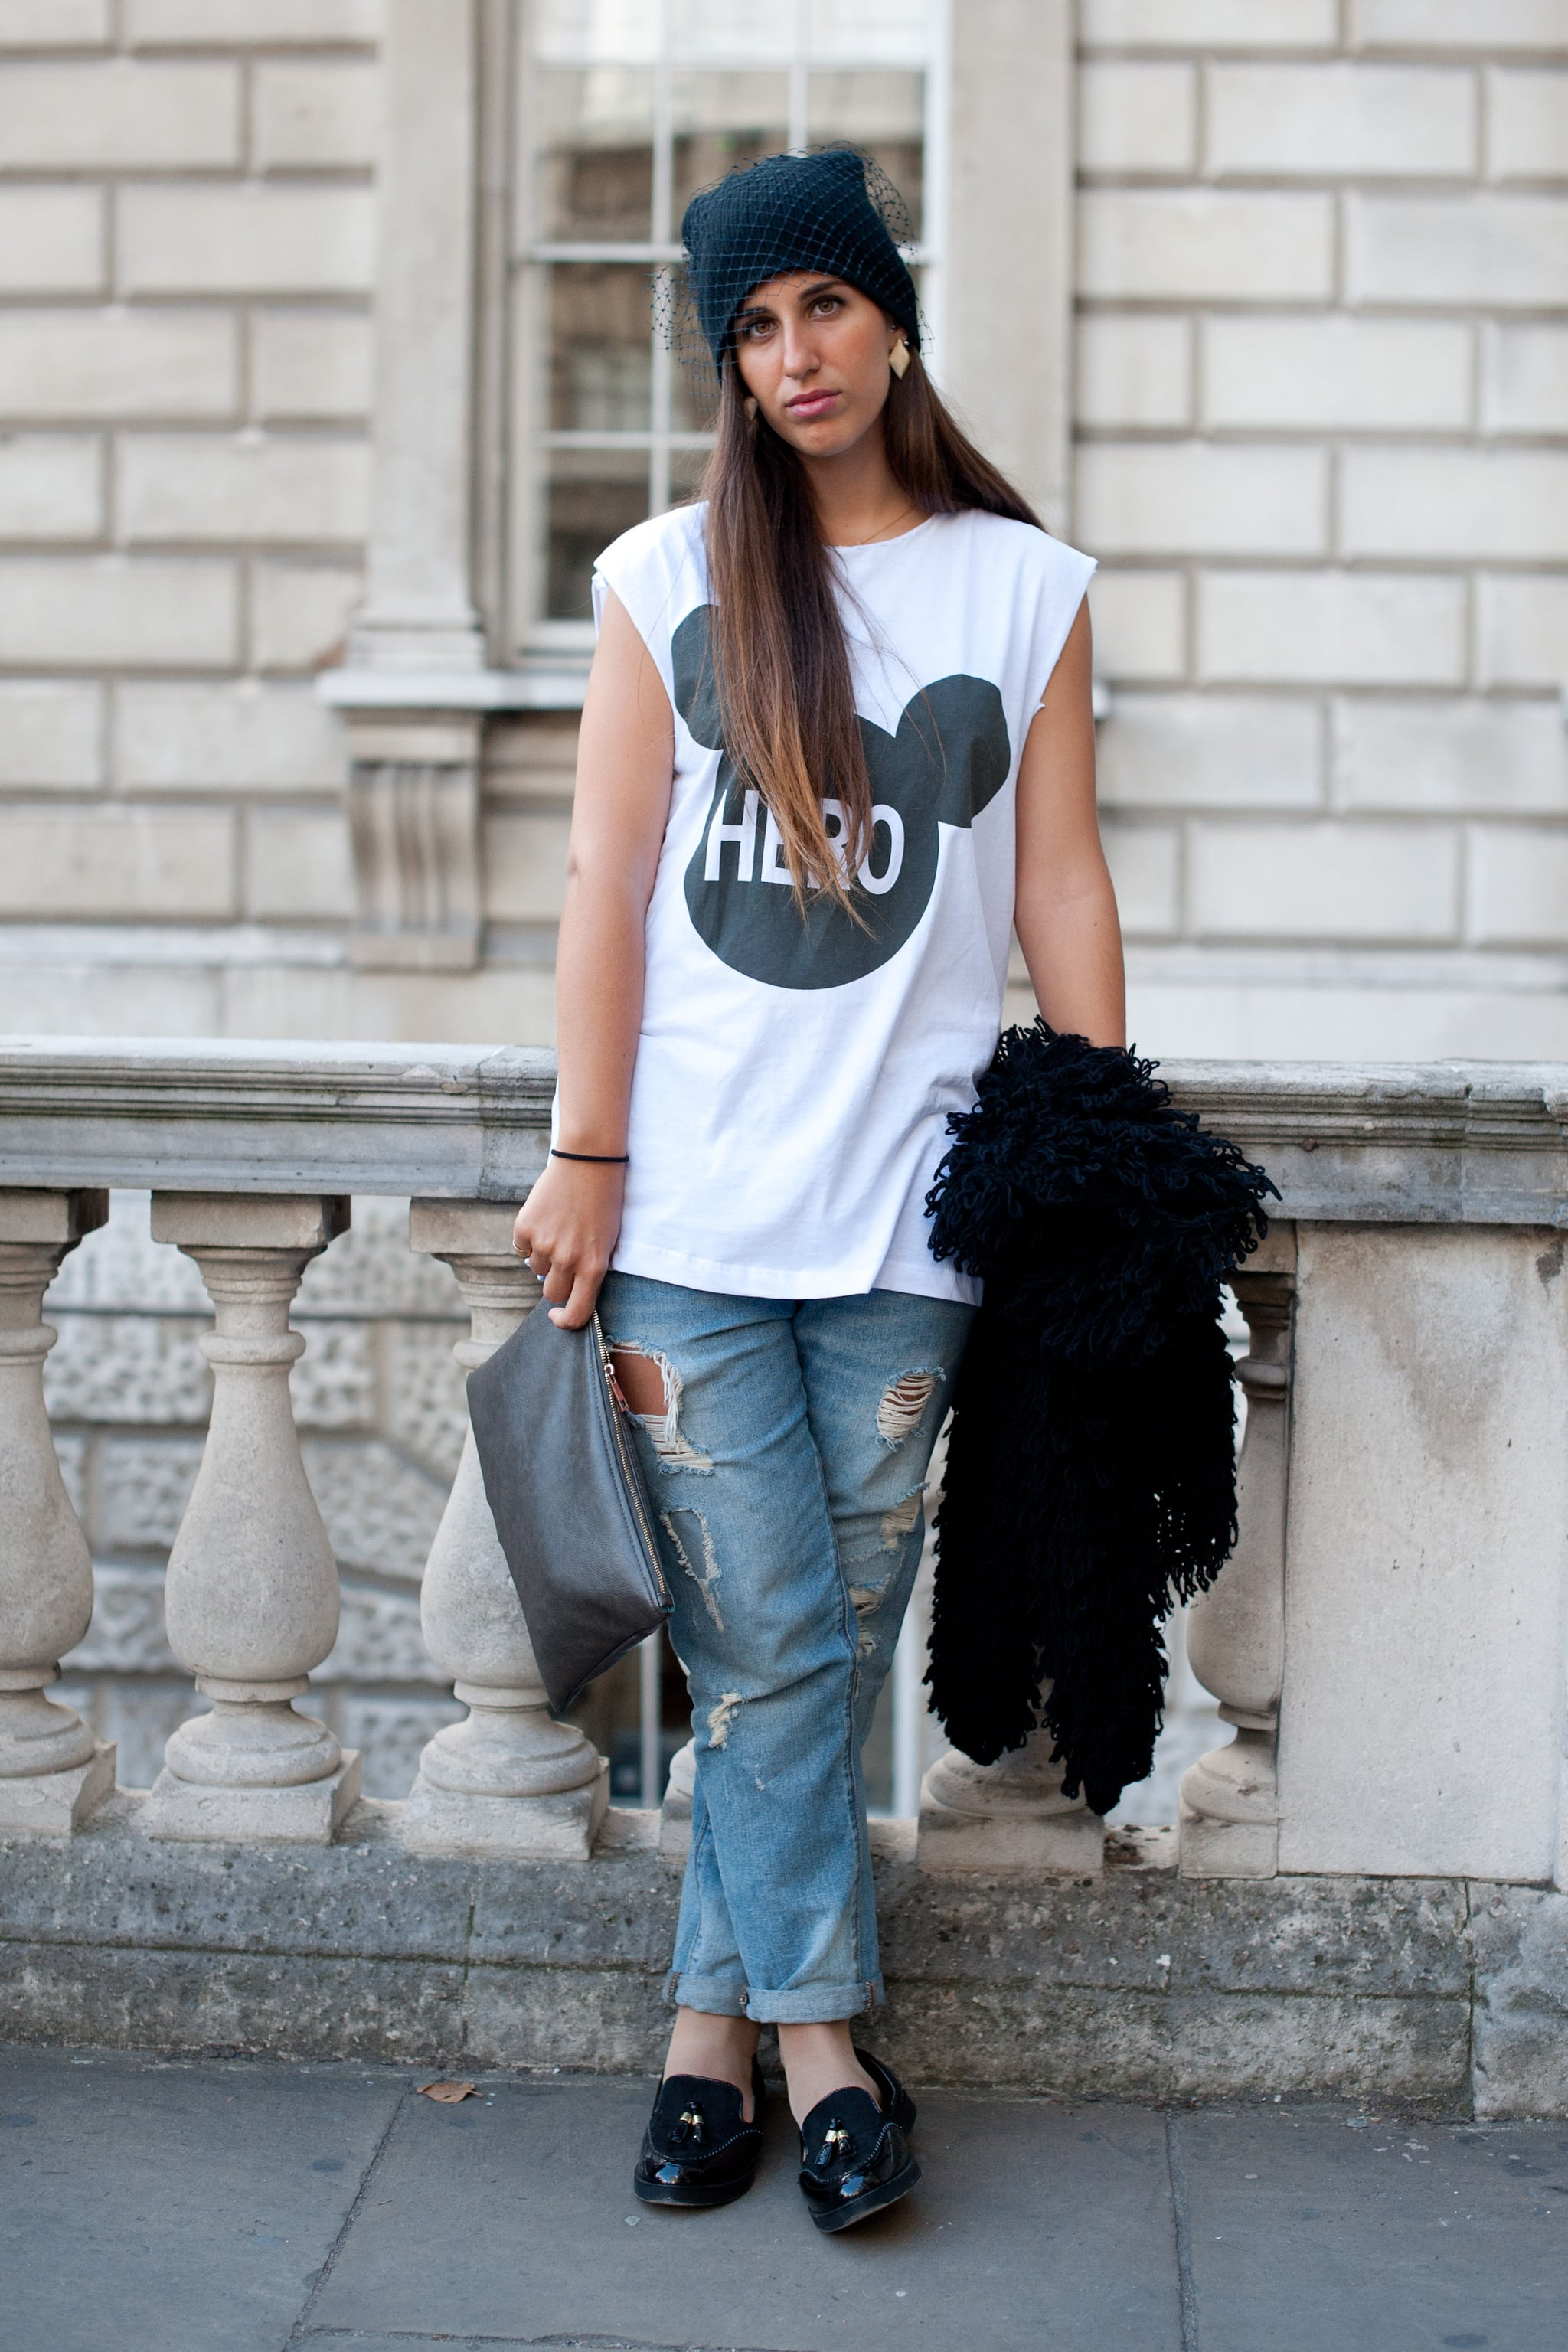 Unexpected (and refined) details like a veiled beanie and tasseled loafers can provide a jeans ensemble with just the right amount of off-duty polish.